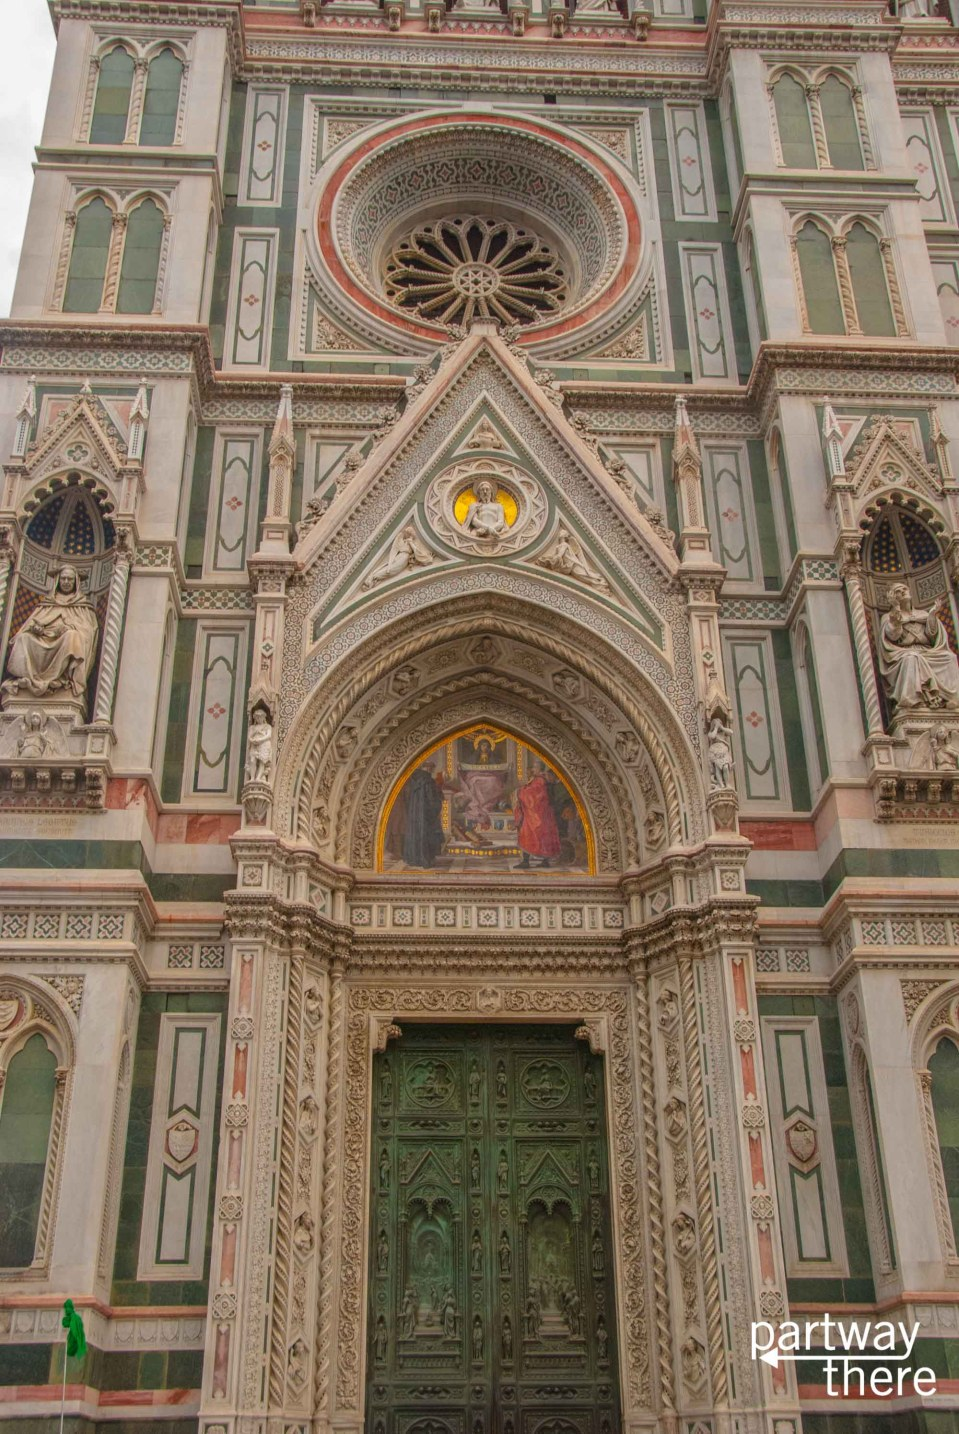 The intricate carvings on the front doors of the Duomo in Florence, Italy